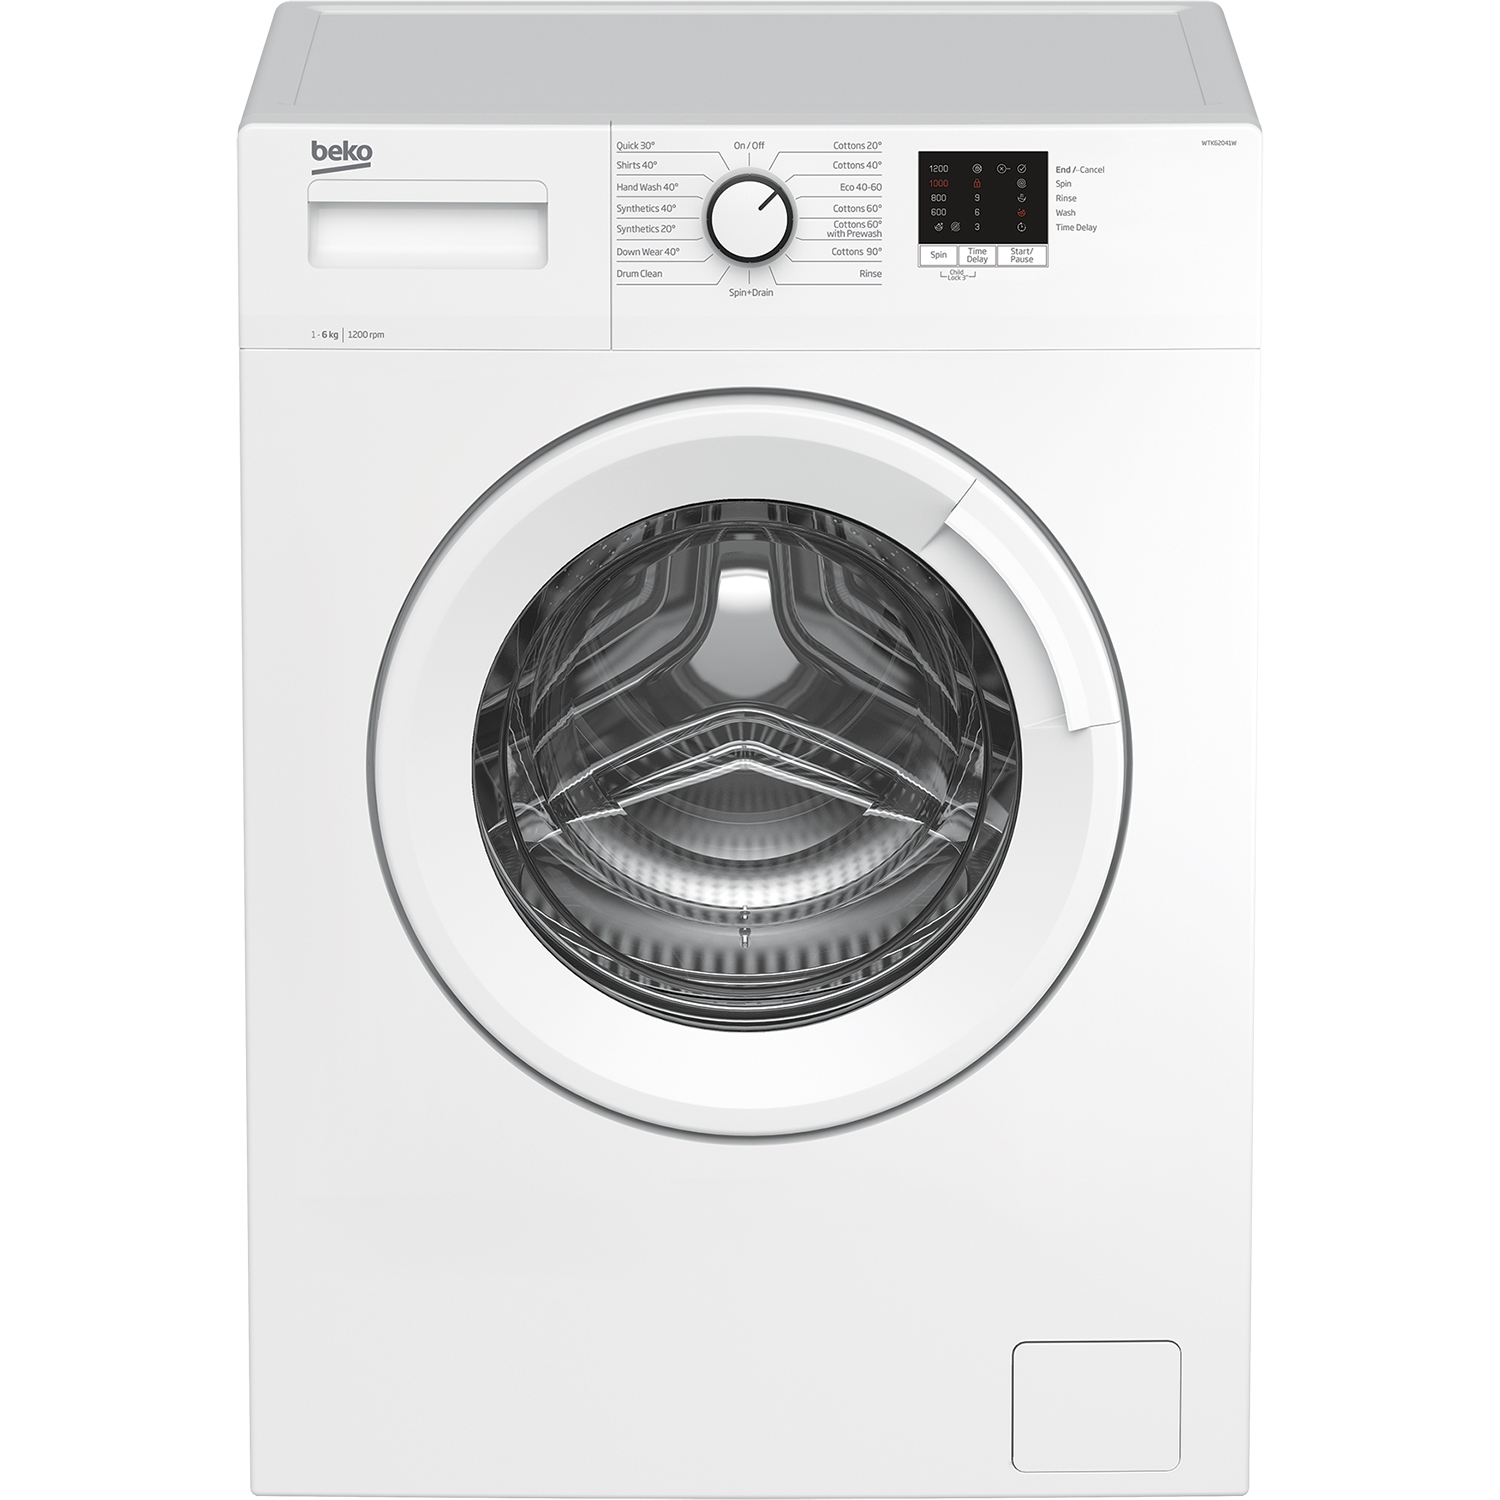 Beko 6kg 1200 Spin Washing Machine - White - A+++ Energy Rated - 0